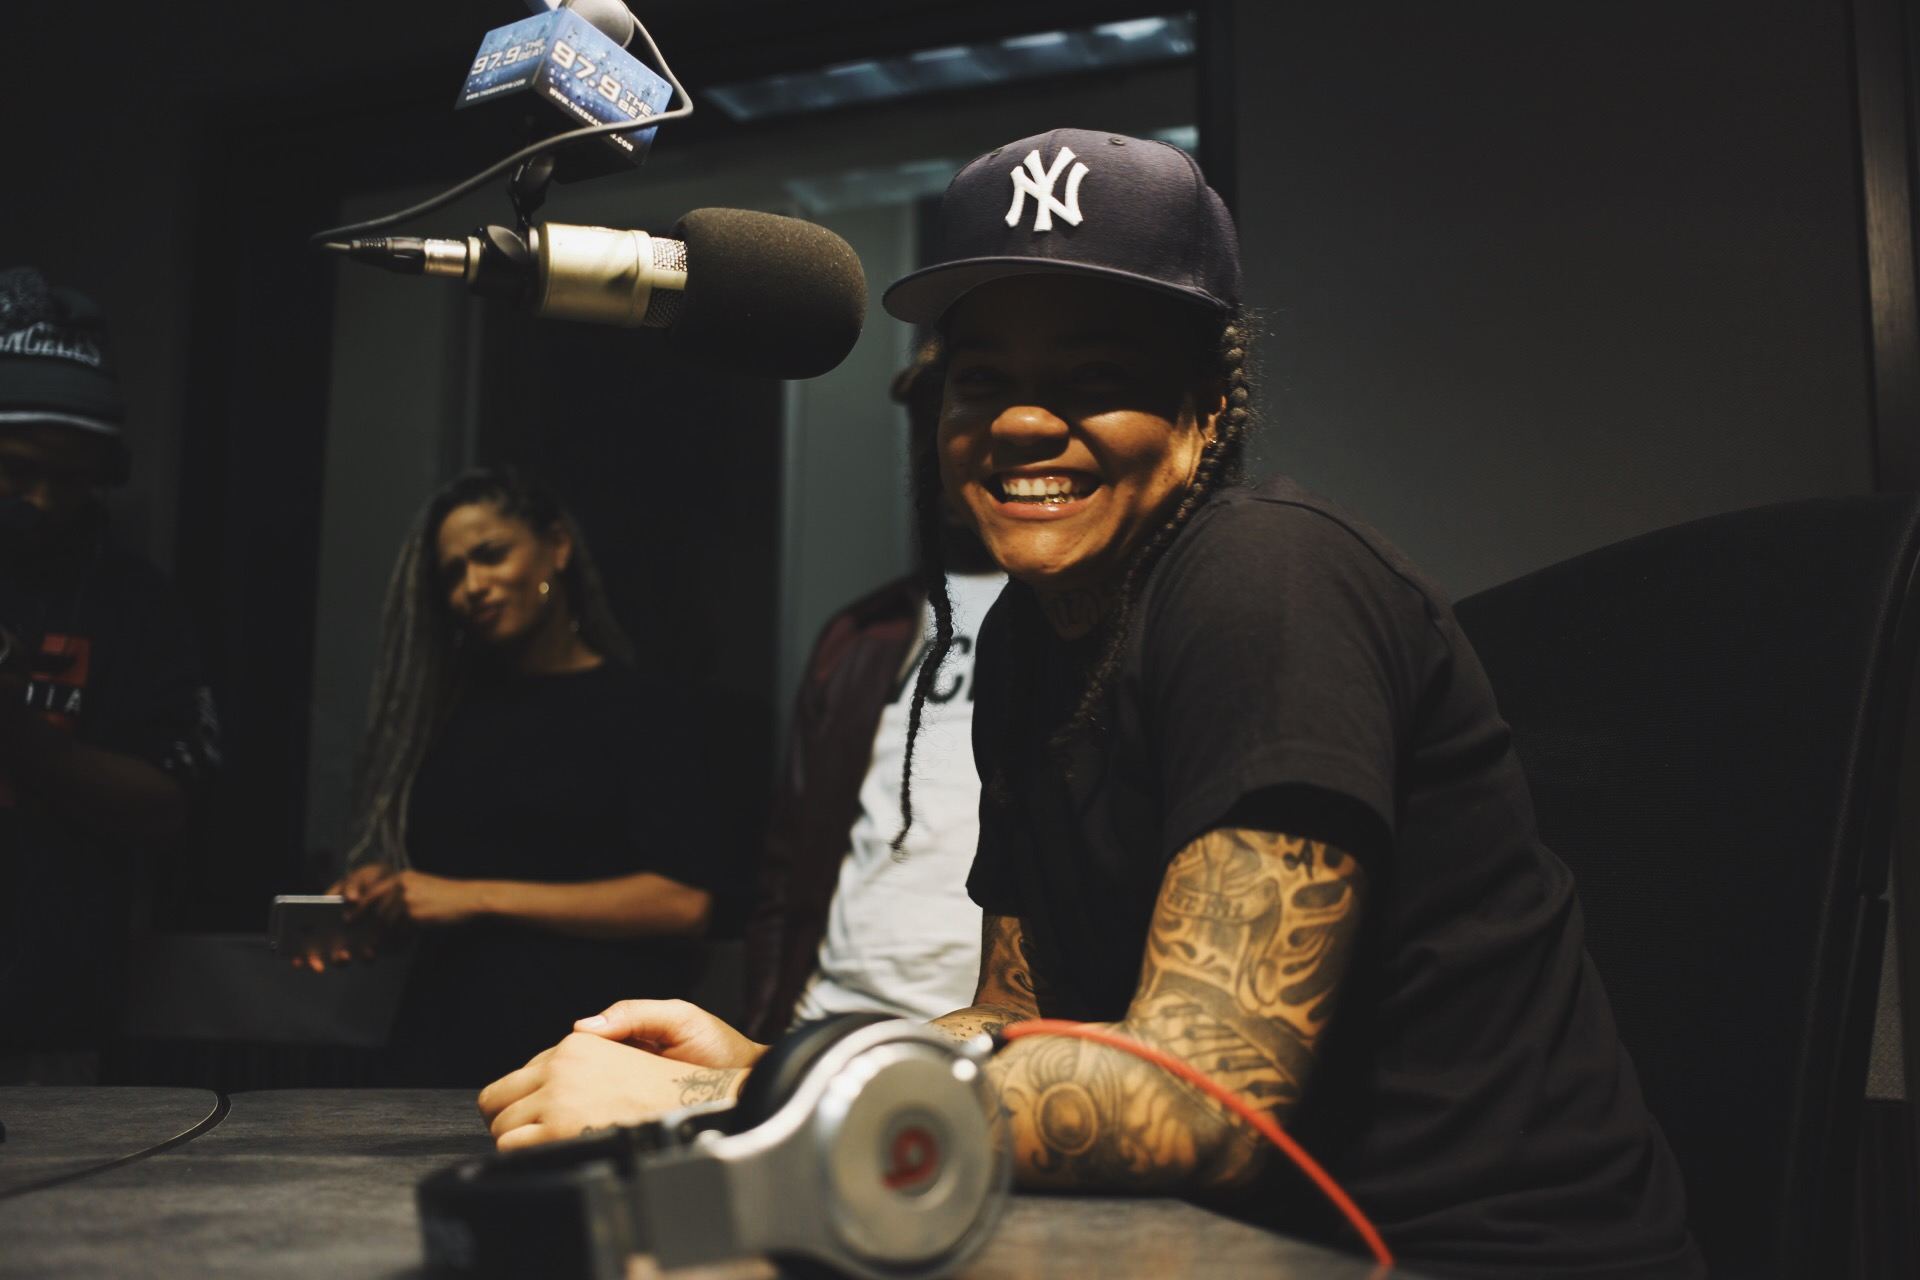 """Young M.A """"Henny'd Up,"""" LION BABE ft. Ghostface Killah """"Rainbows"""" & More 